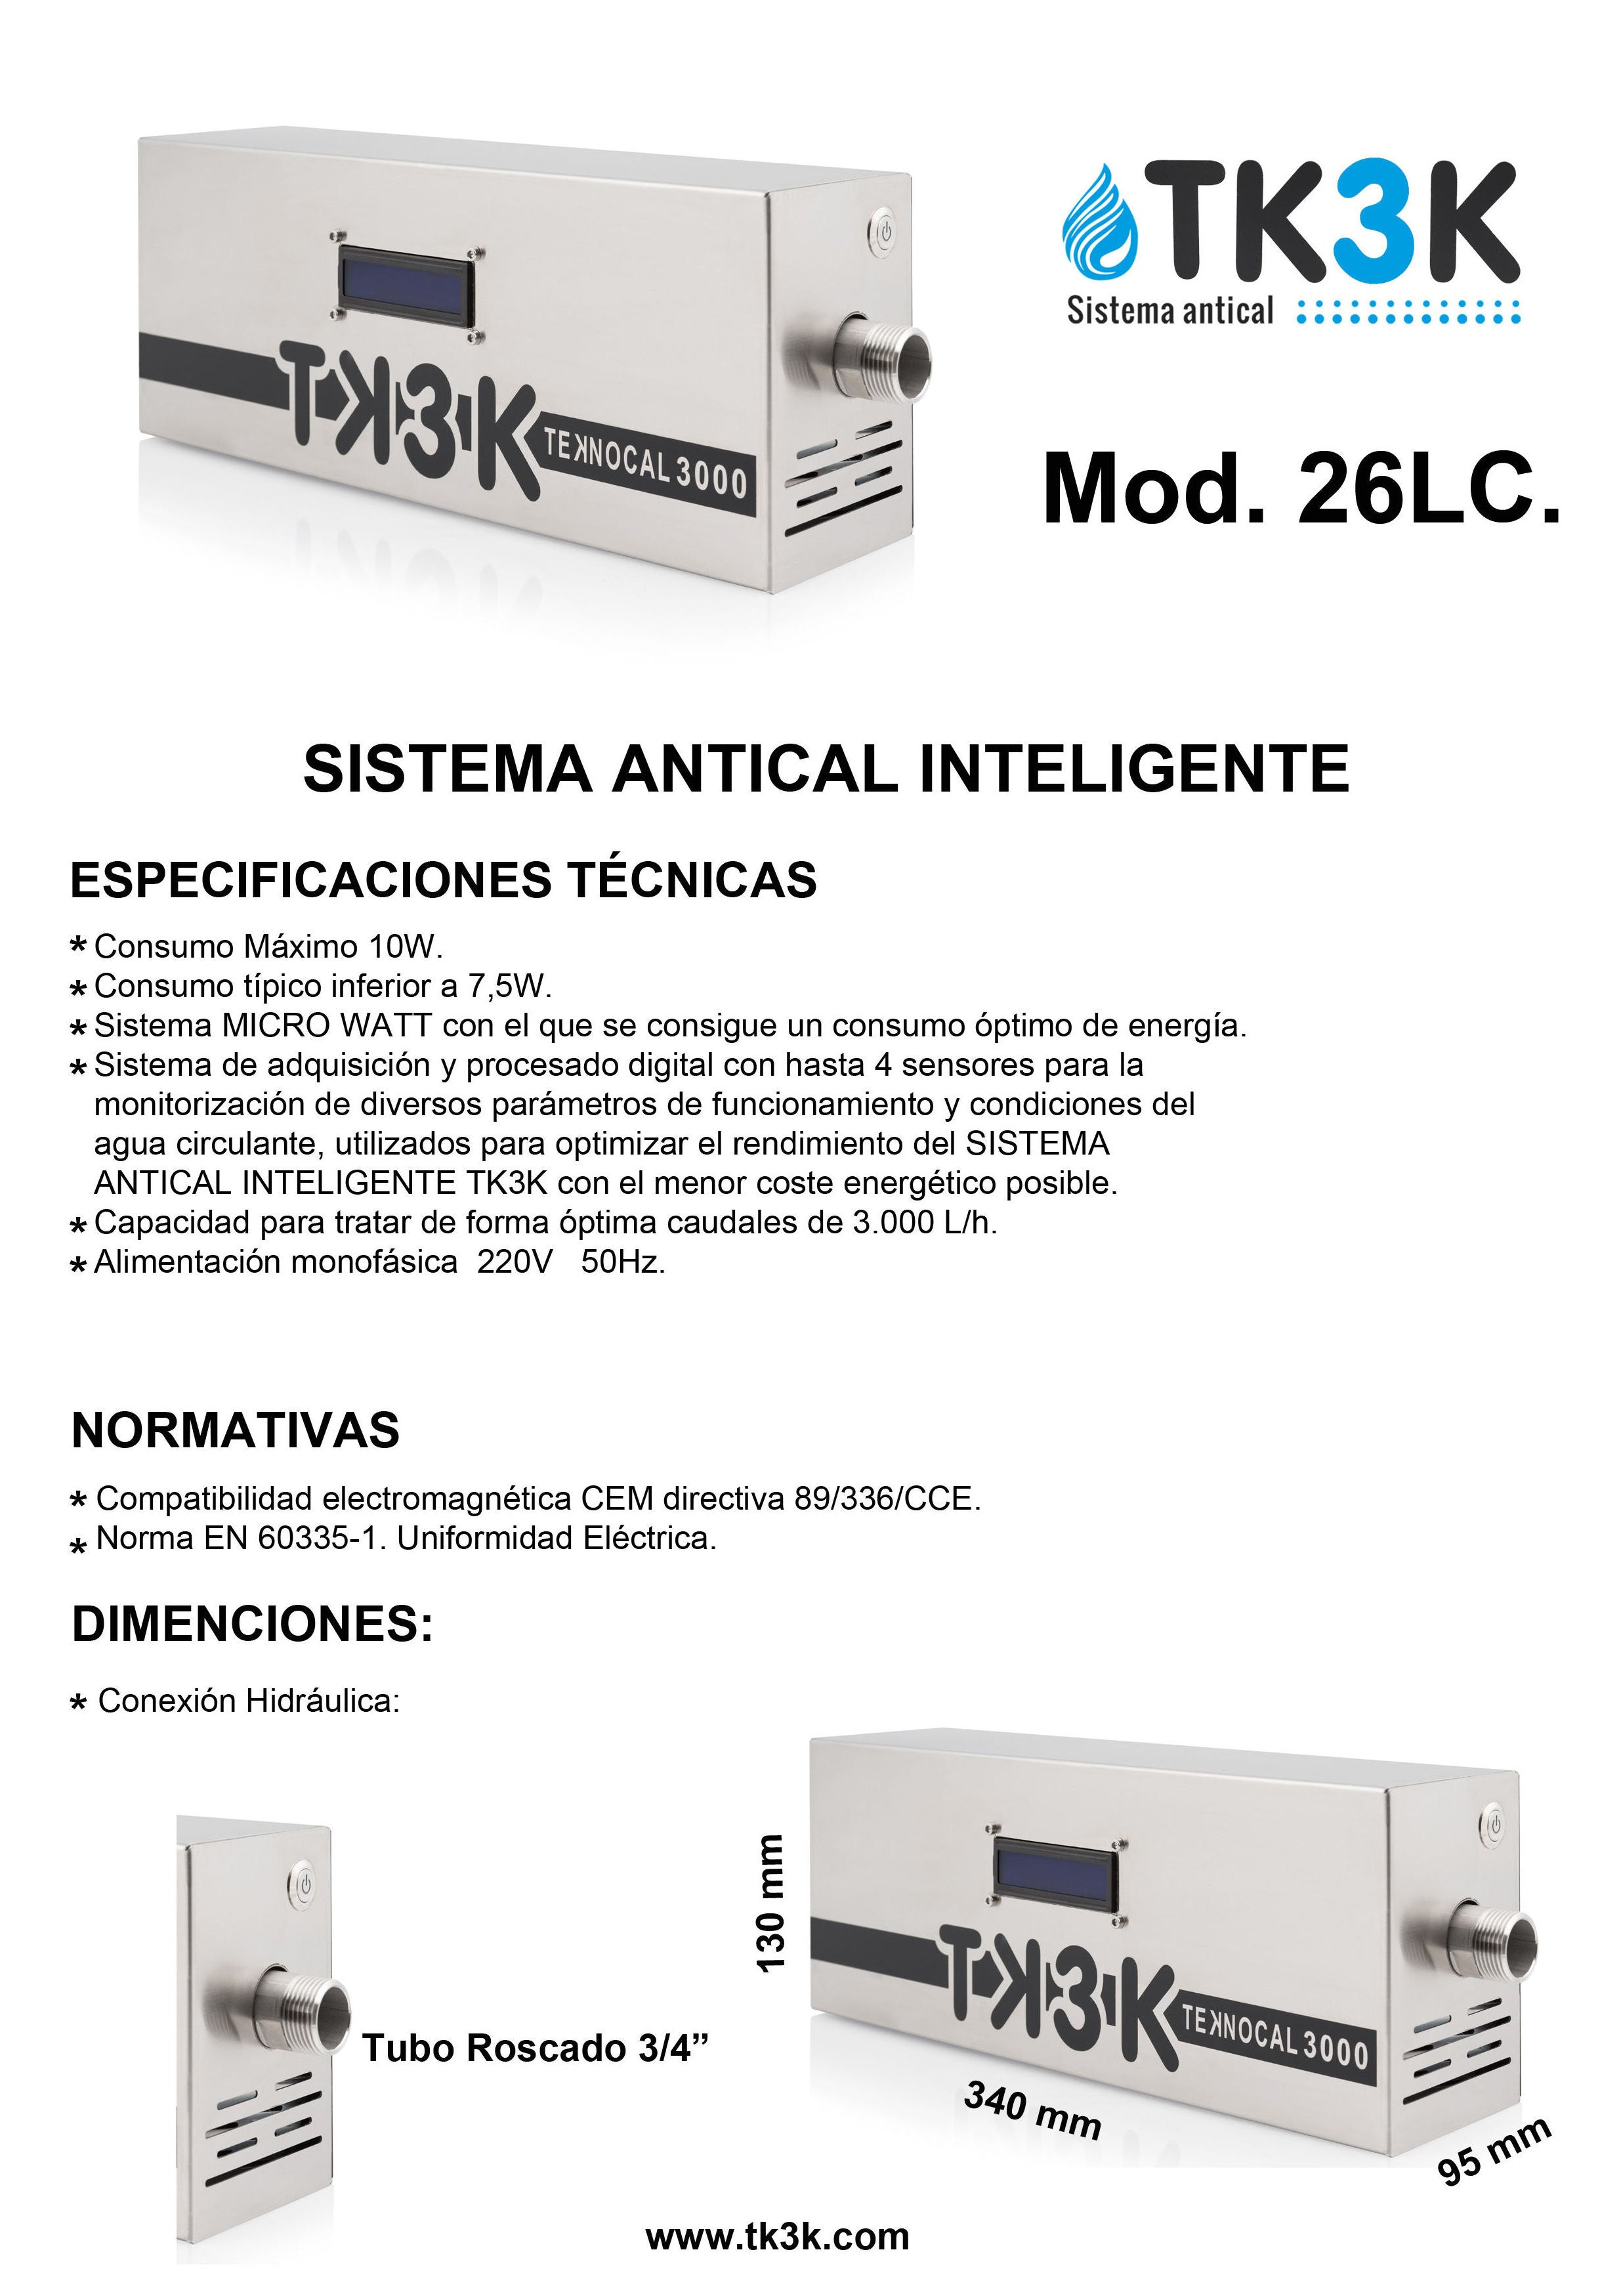 Sistema Antical Inteligente TK3K 26 LC